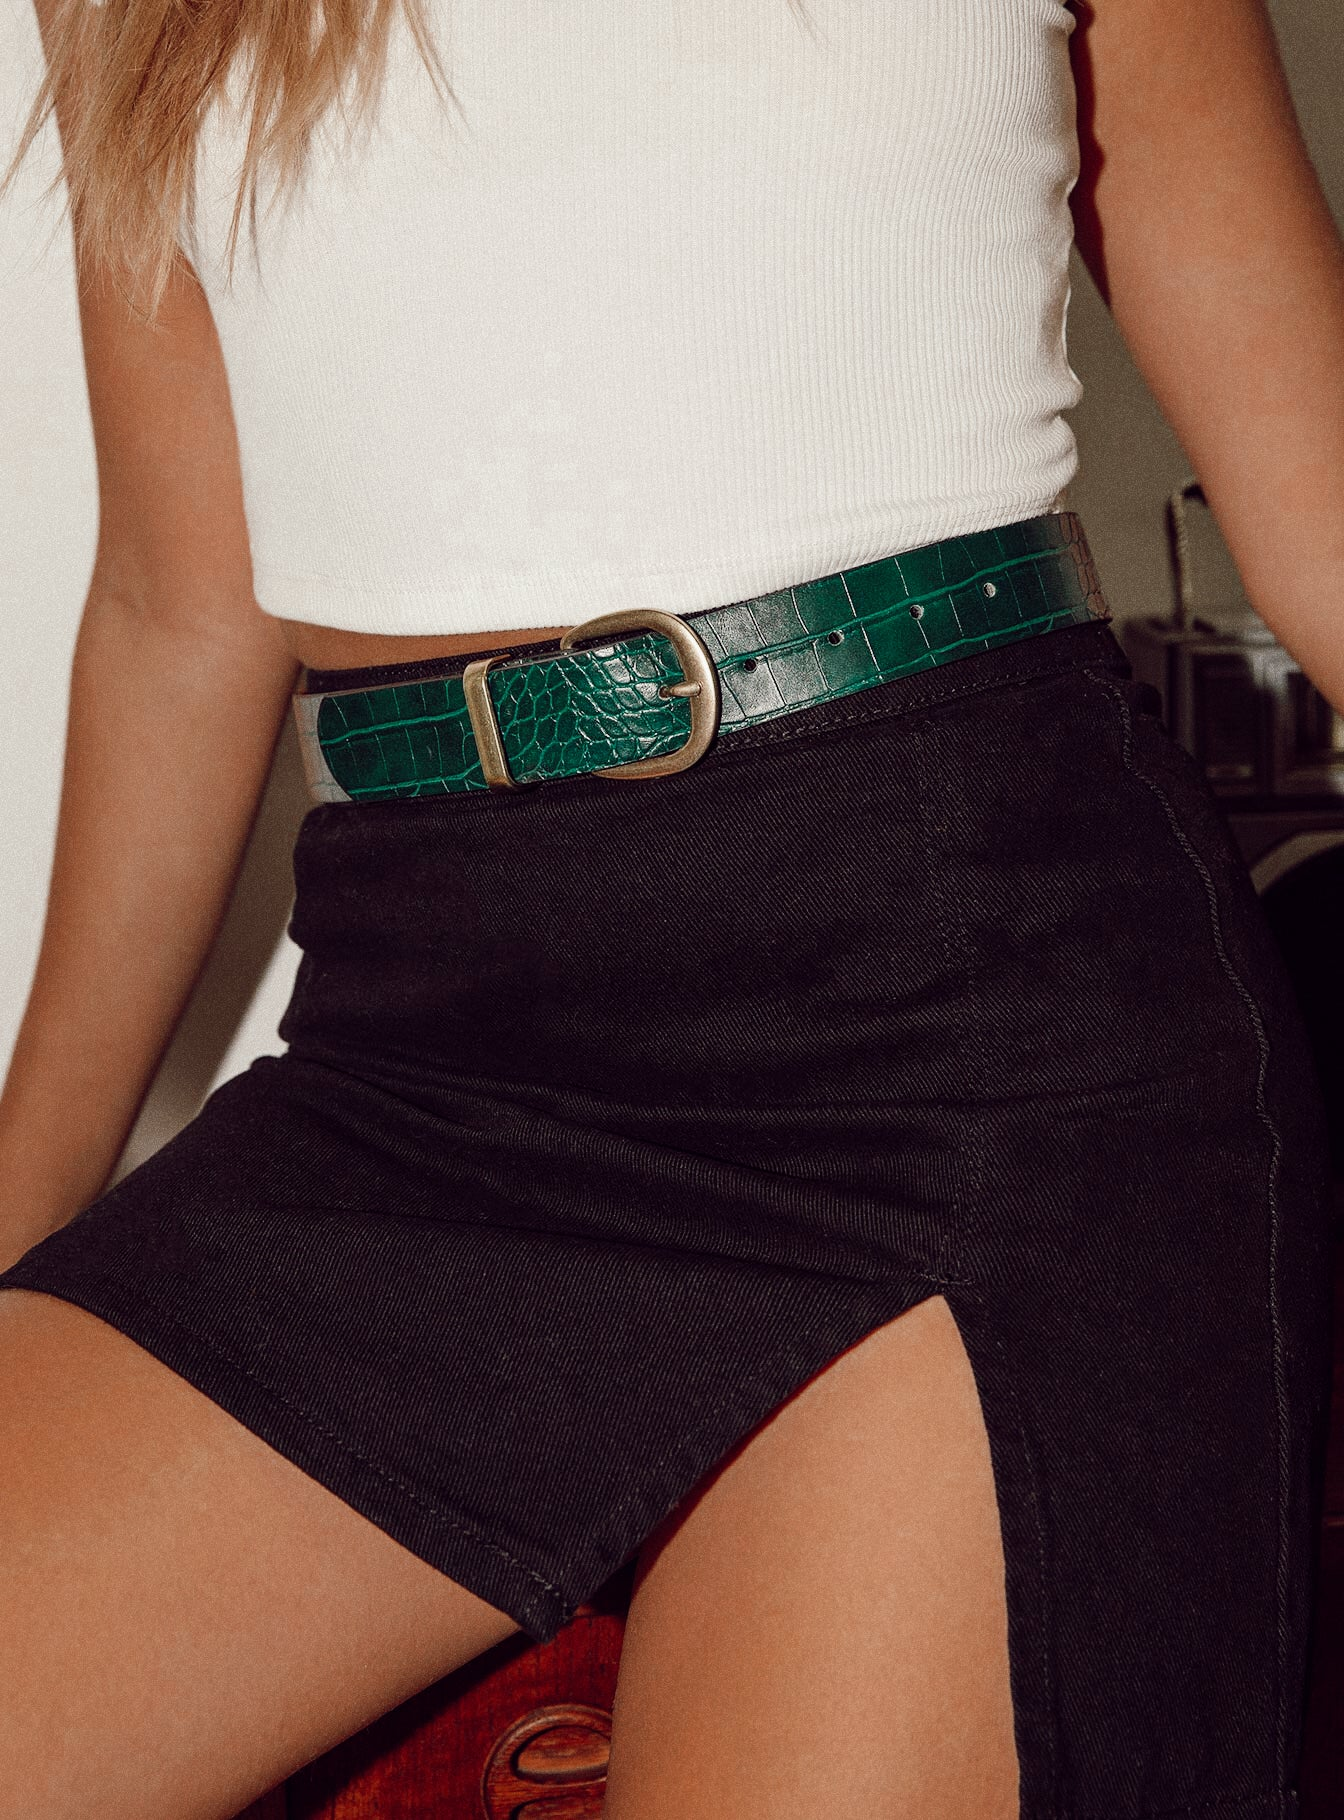 The Gretta Belt